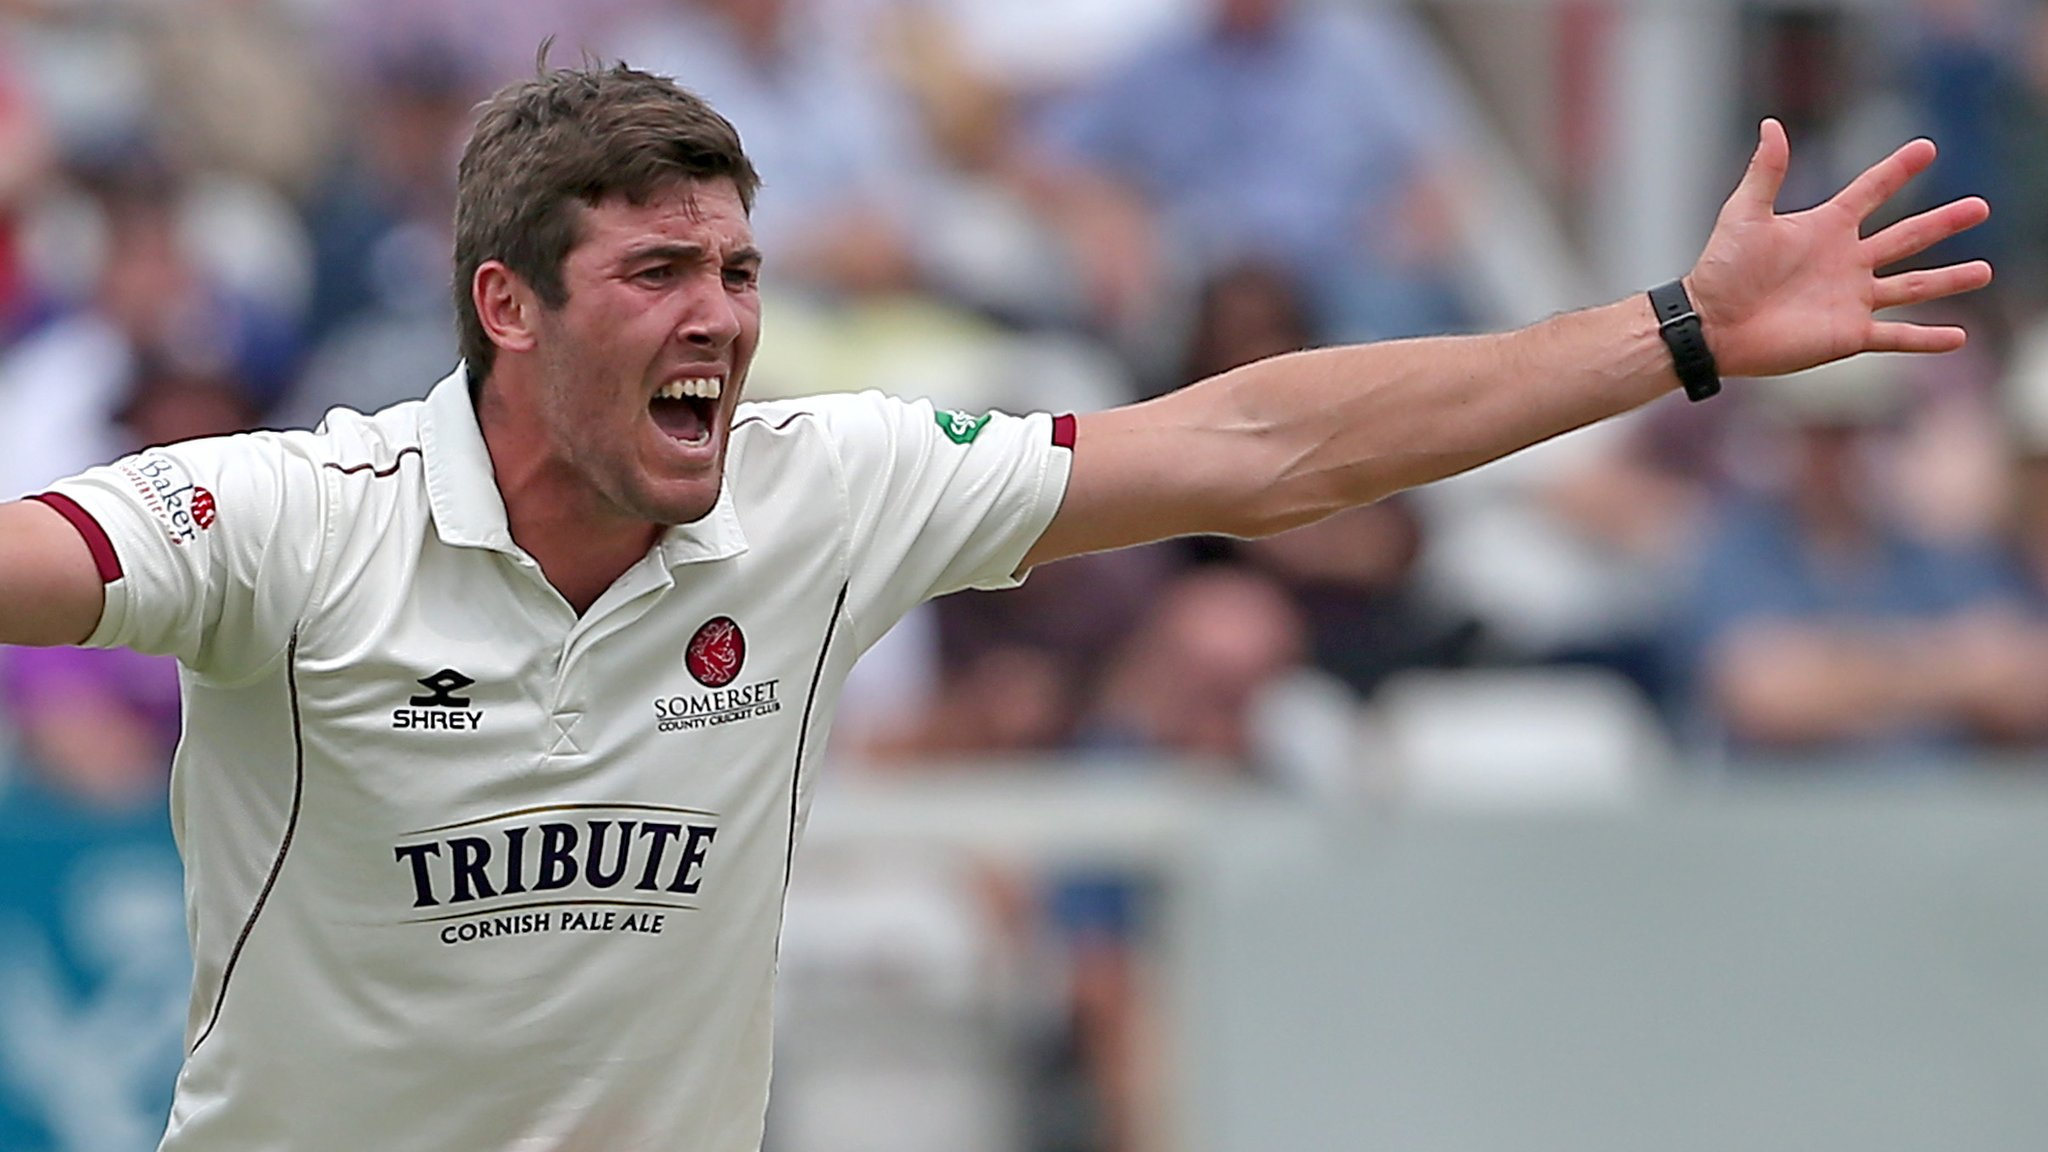 County Championship: Somerset bowl out Essex despite Alastair Cook's 80